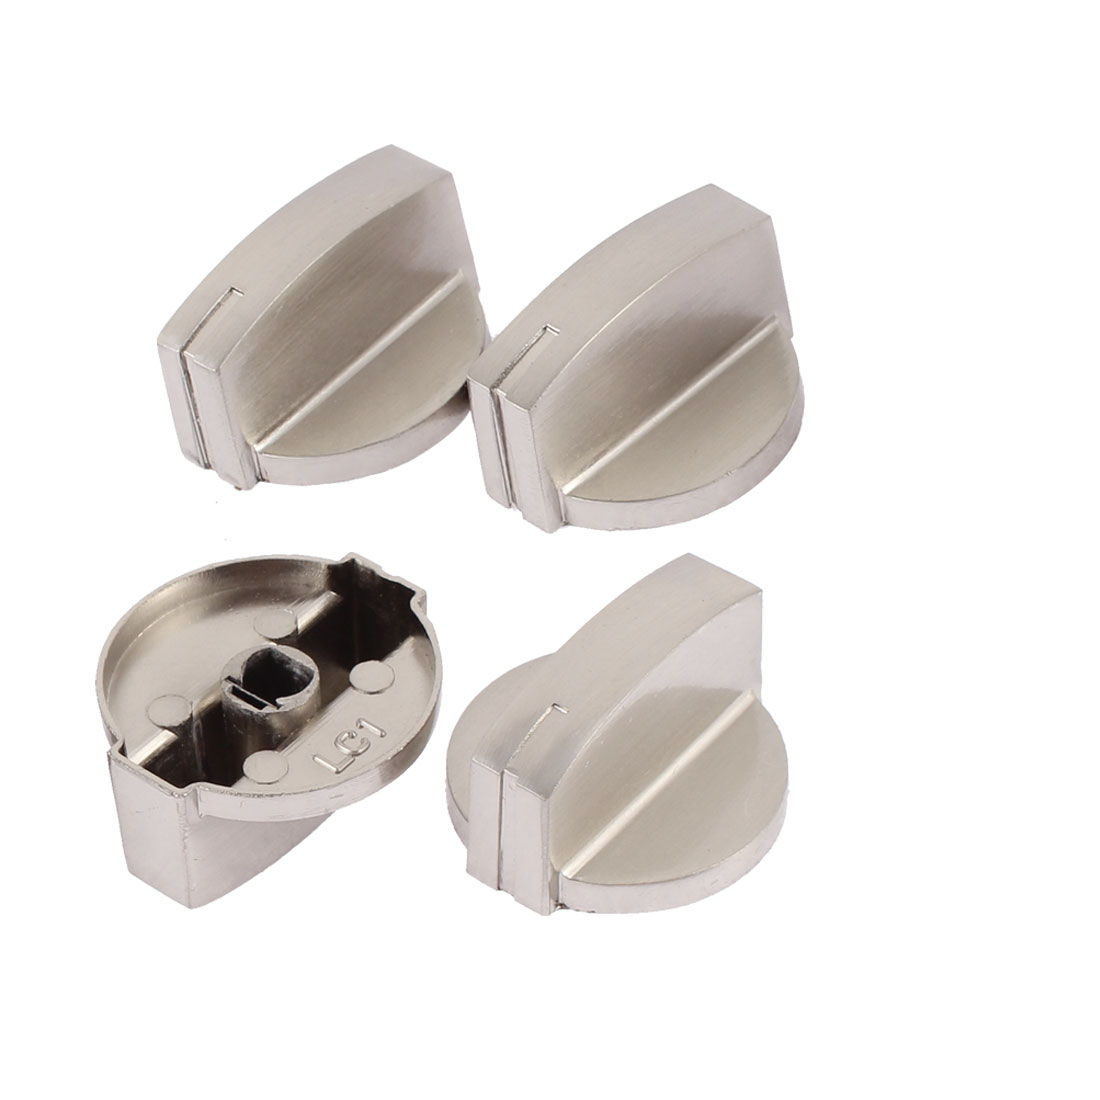 Alloy Pointer Potentiometer Control Switch Knob Cap Silver Tone 4Pcs